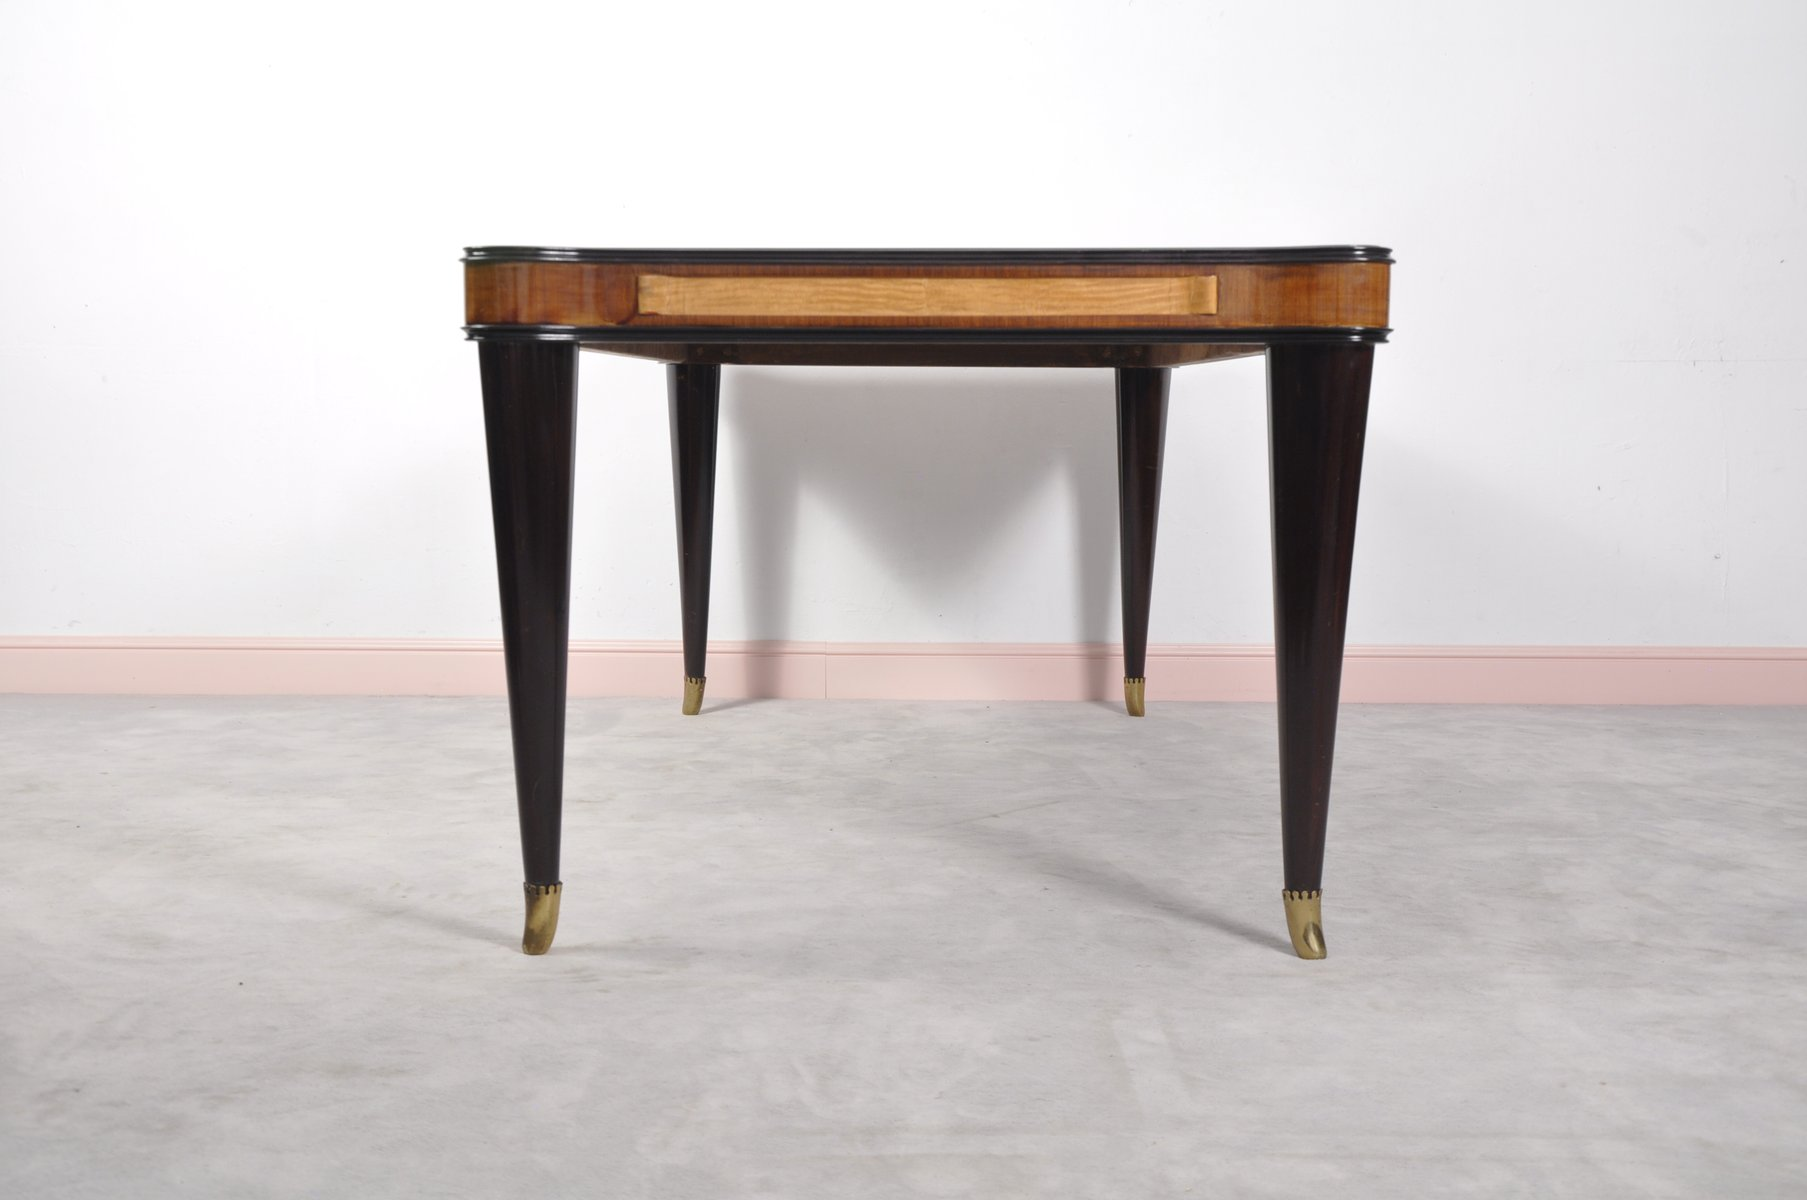 Glass dining table with price - Vintage Italian Glass Dining Table By Paolo Buffa